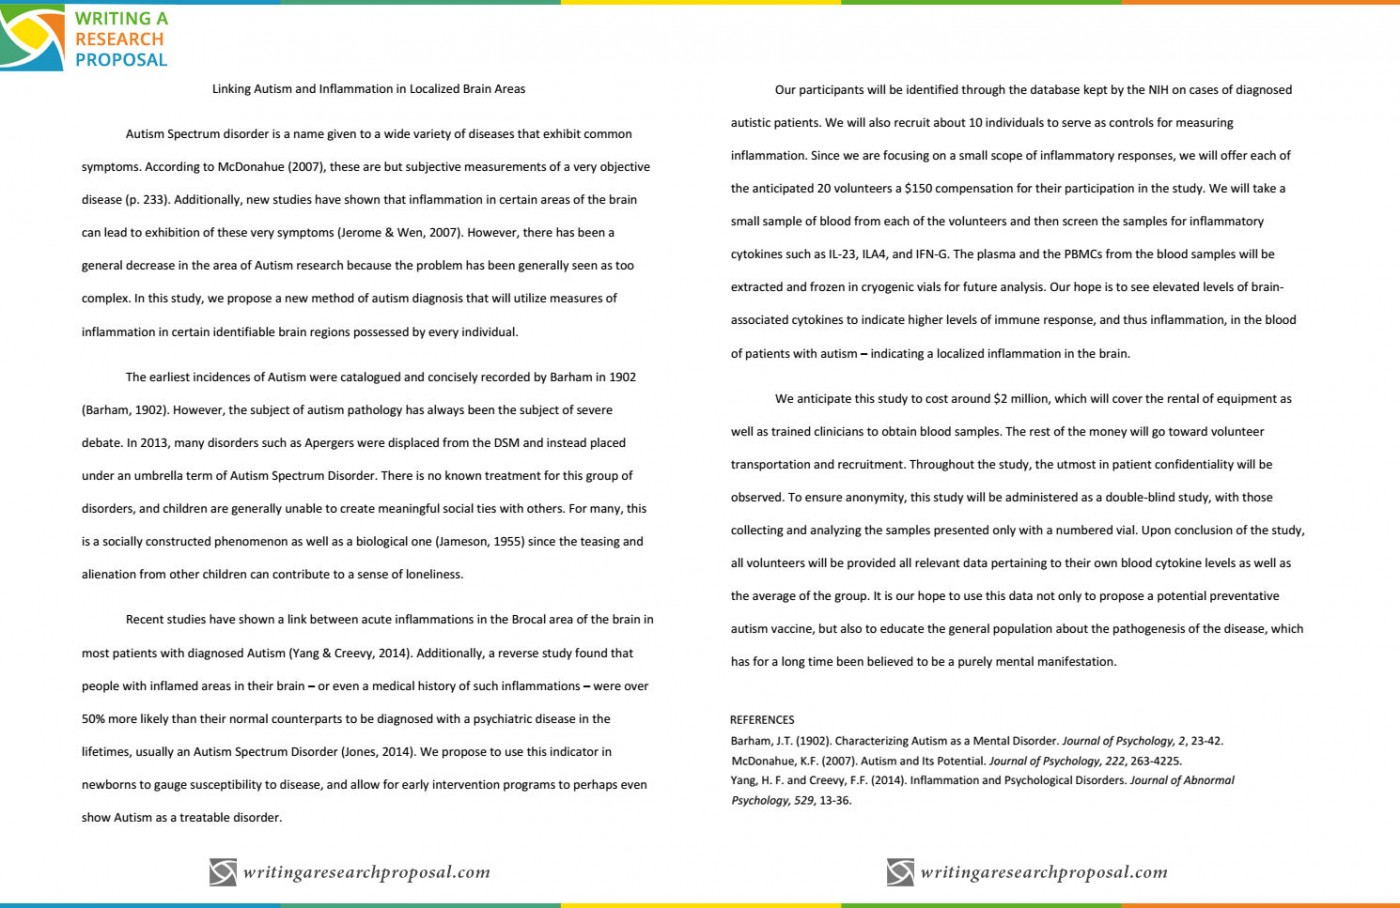 001 Autism Research Paper Apa Format Autistic Disorder Frightening - 1400